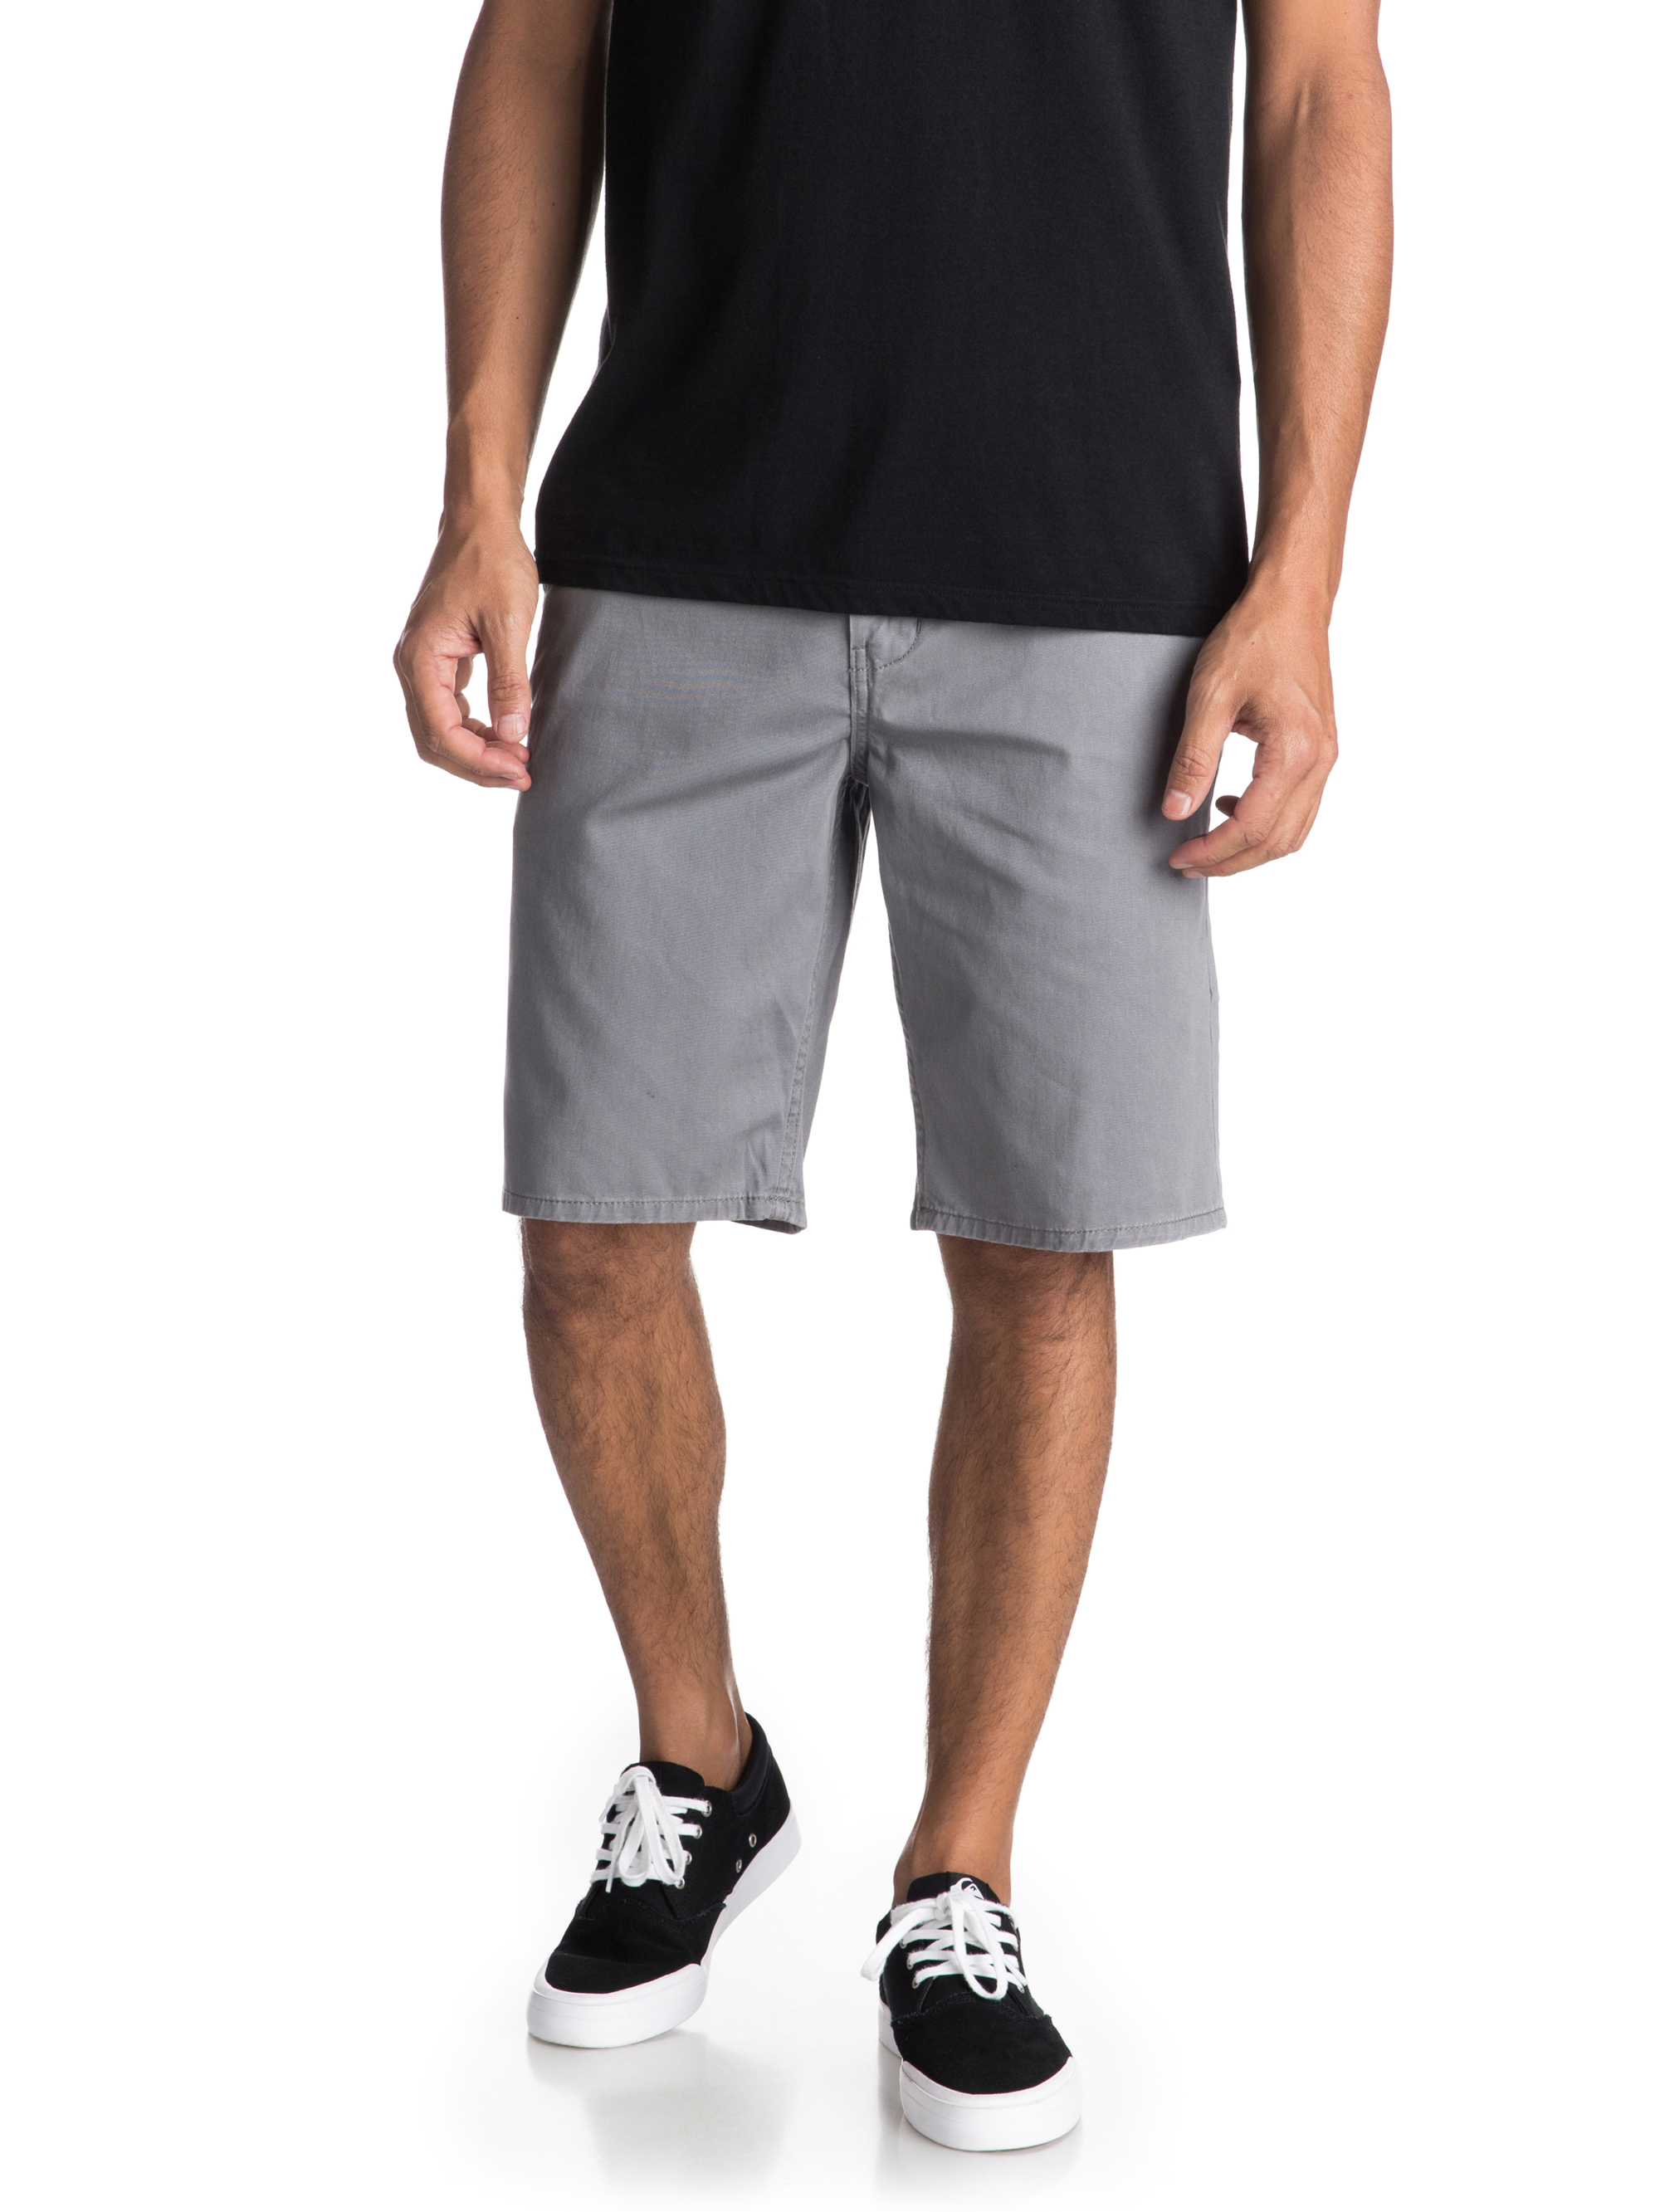 Szorty Quiksilver New Everyday Chino (Charcoal) Ss18